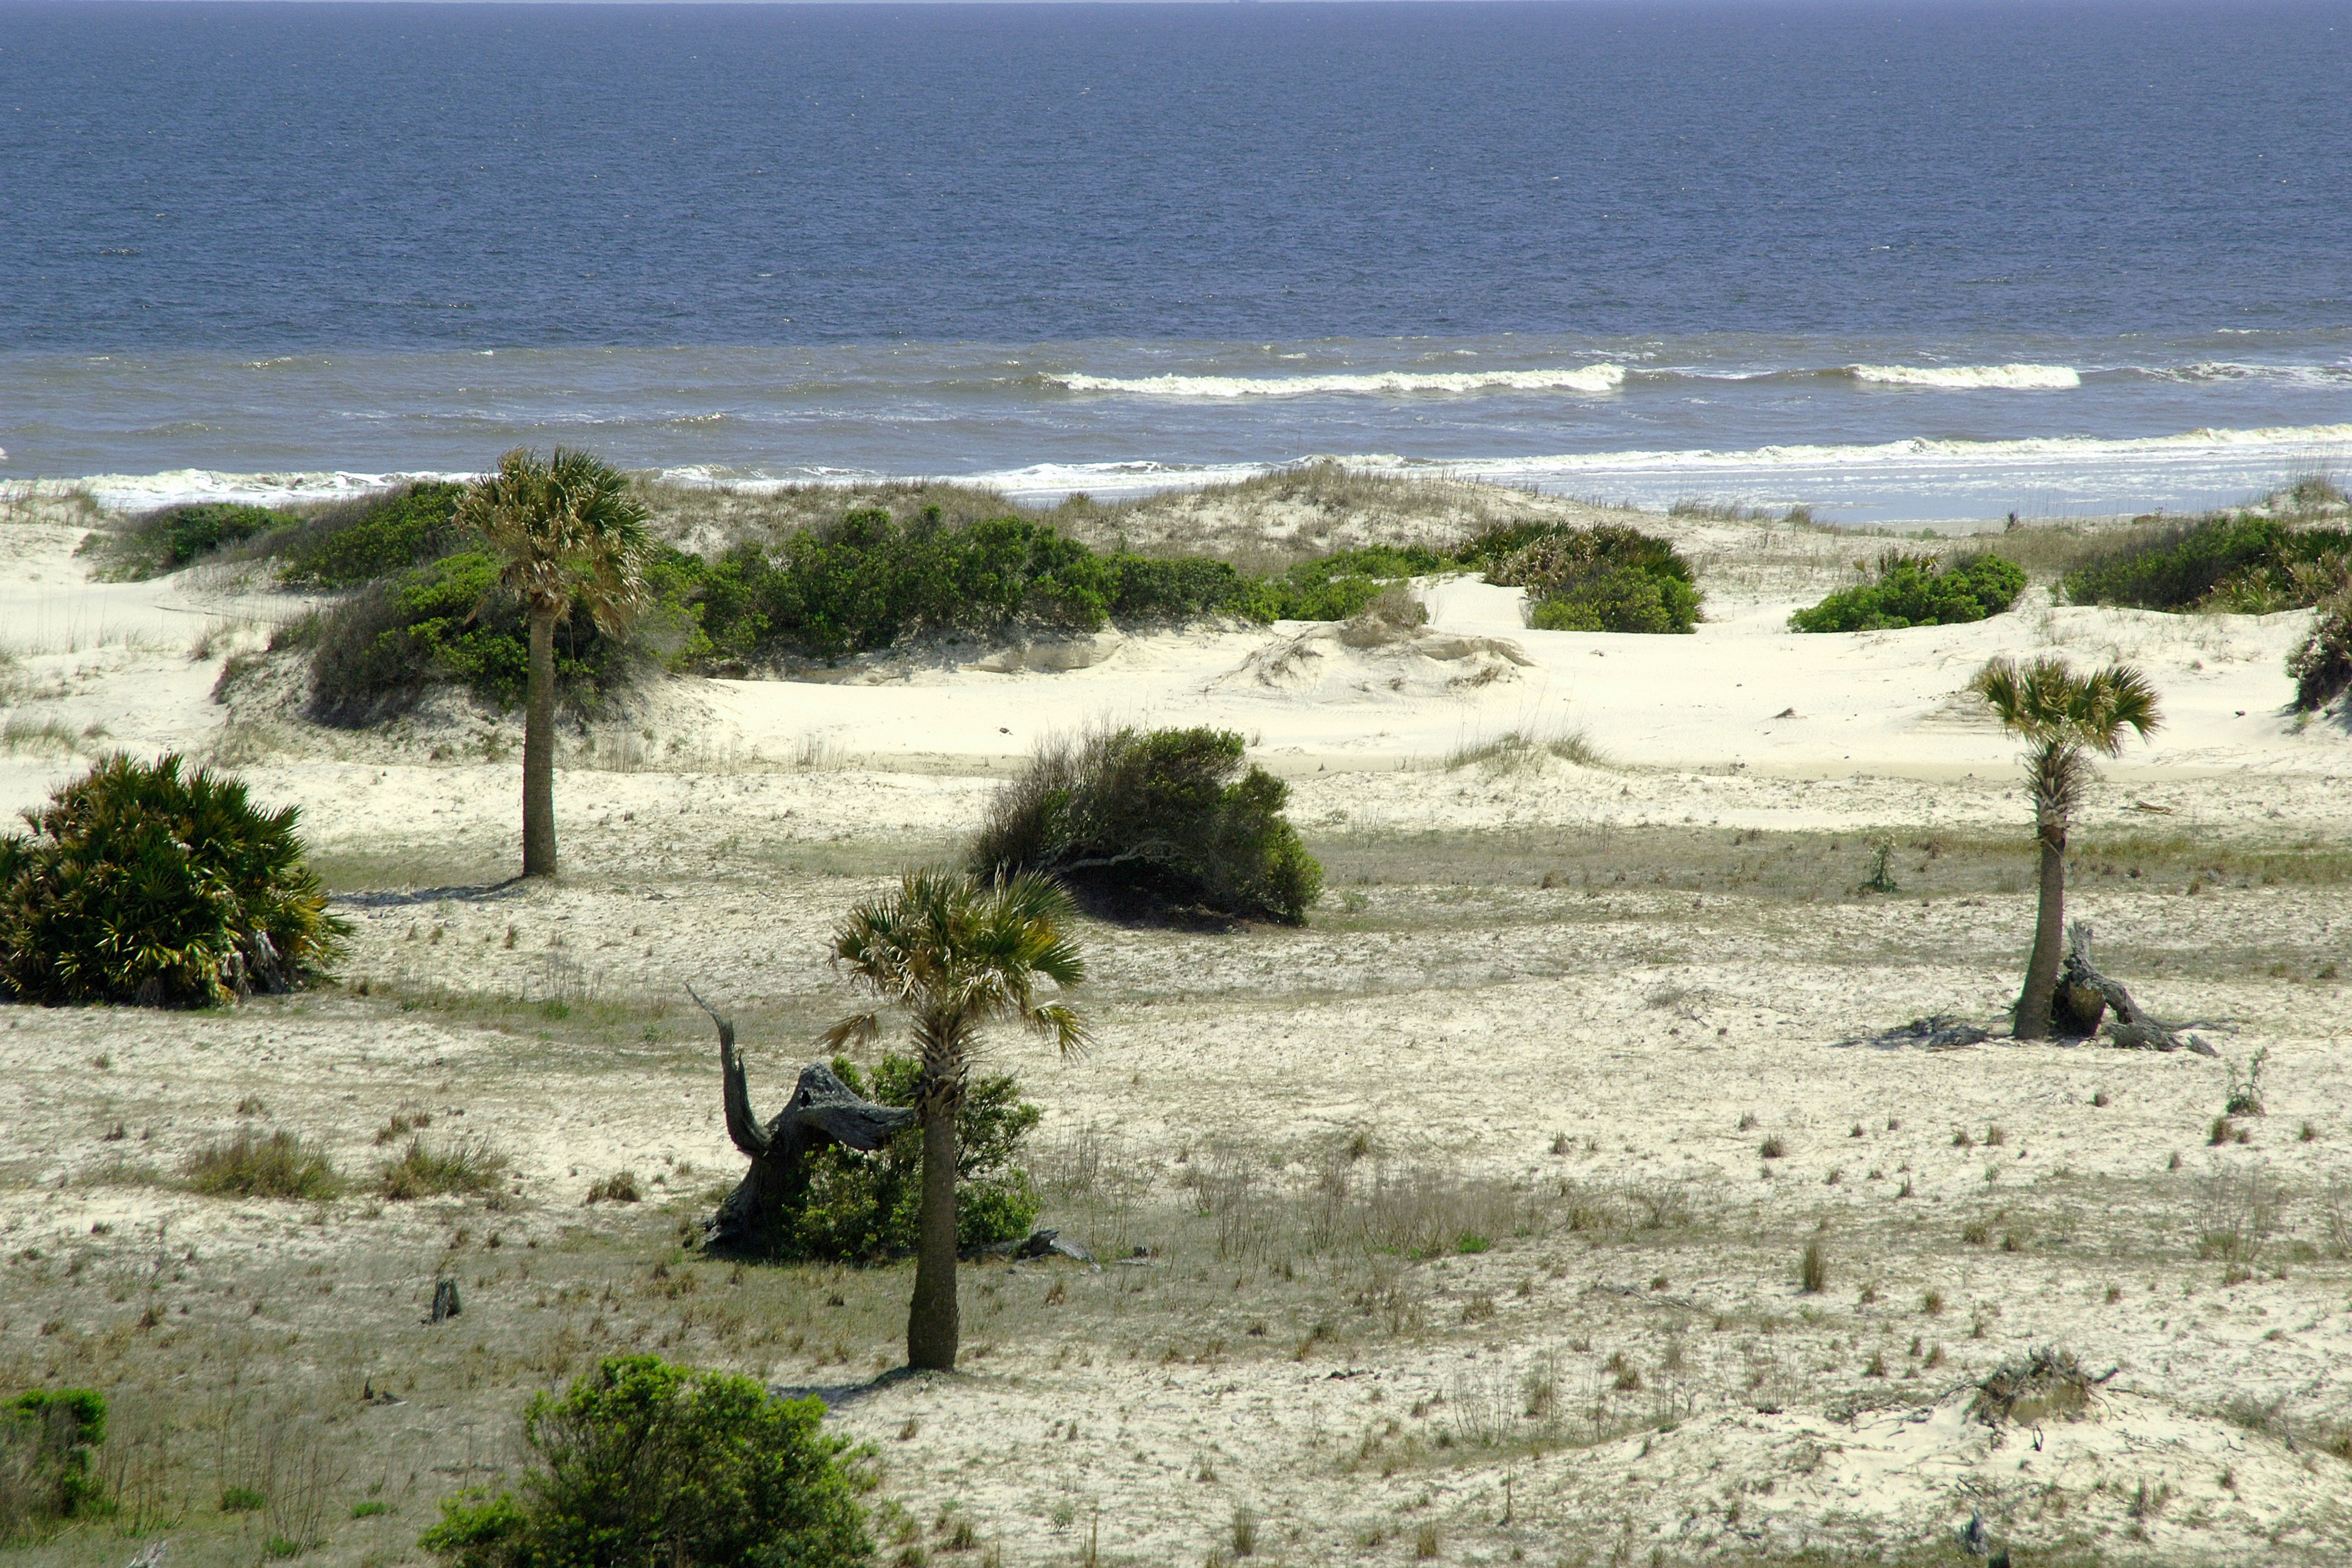 Archer's Acres: Our Visit to Cumberland Island Georgia  |Cumberland Island Georgia